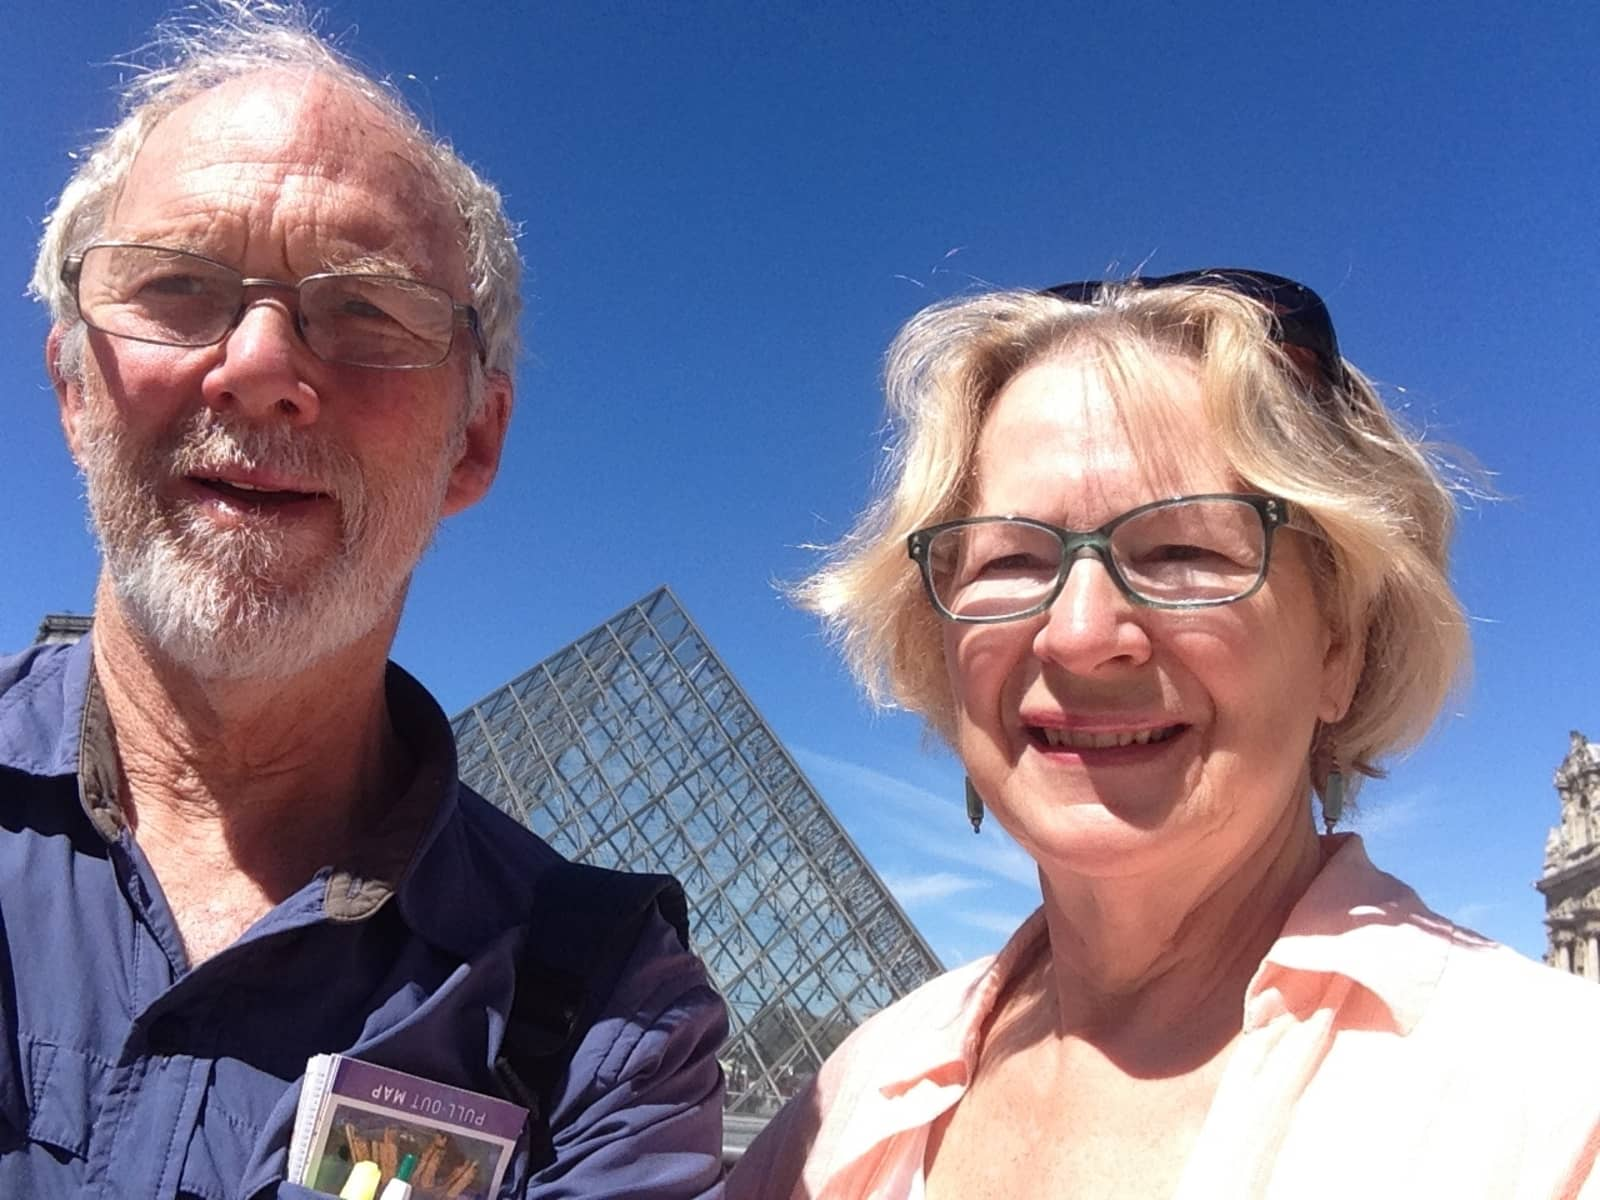 Jayne & John from Seattle, Washington, United States